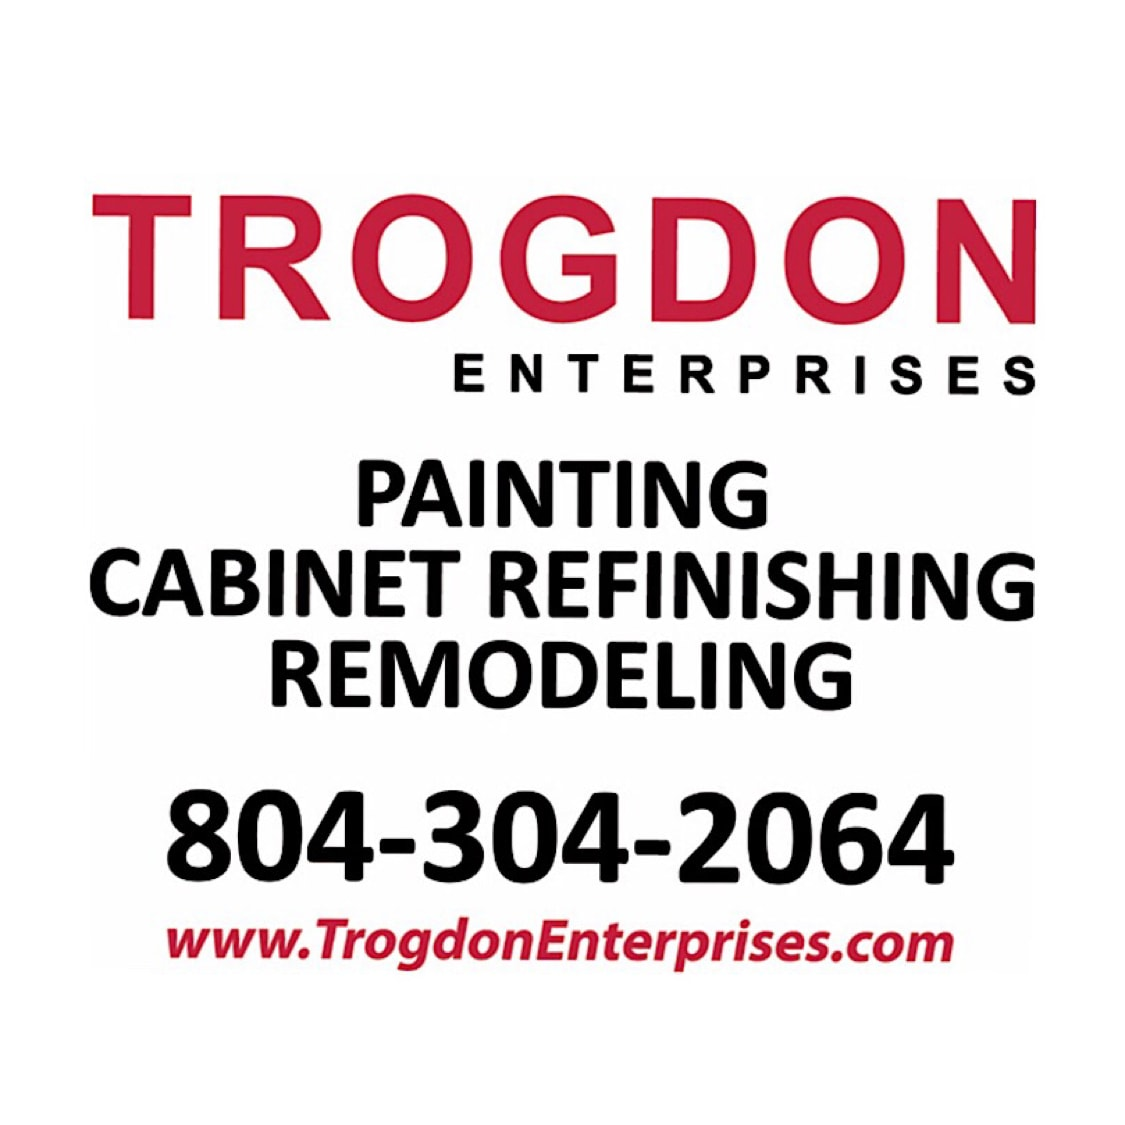 Trogdon Enterprises